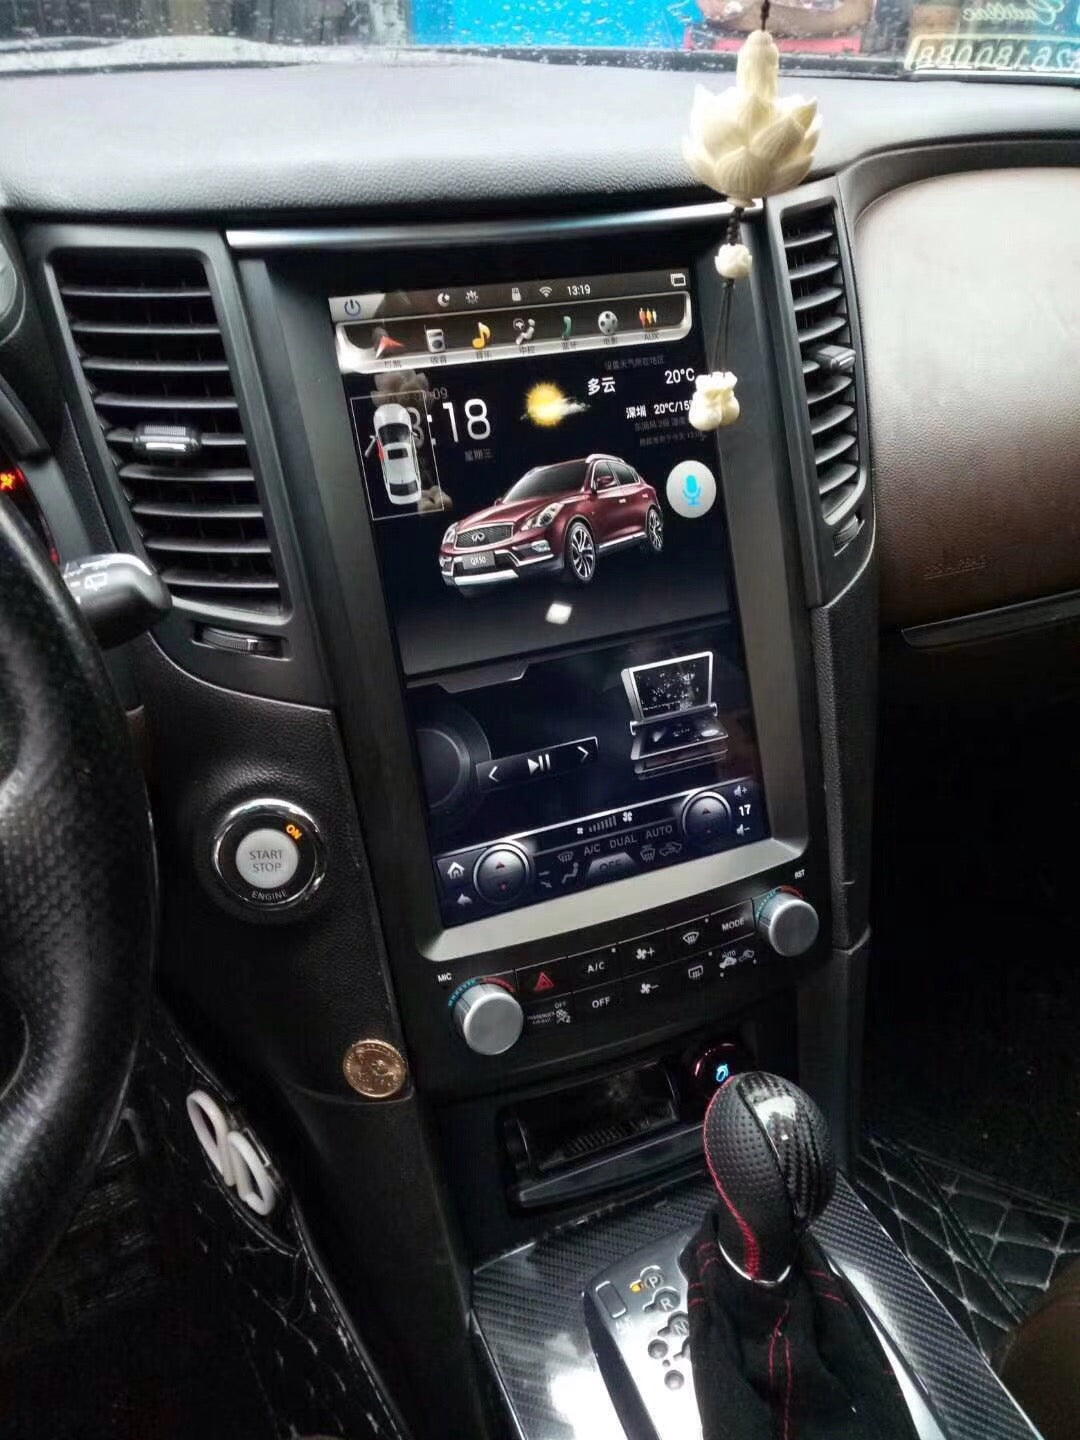 "[Open Box] Infiniti QX70 FX50 FX35 2009 - 2019 12.1"" Vertical Screen Android Radio Tesla Style"